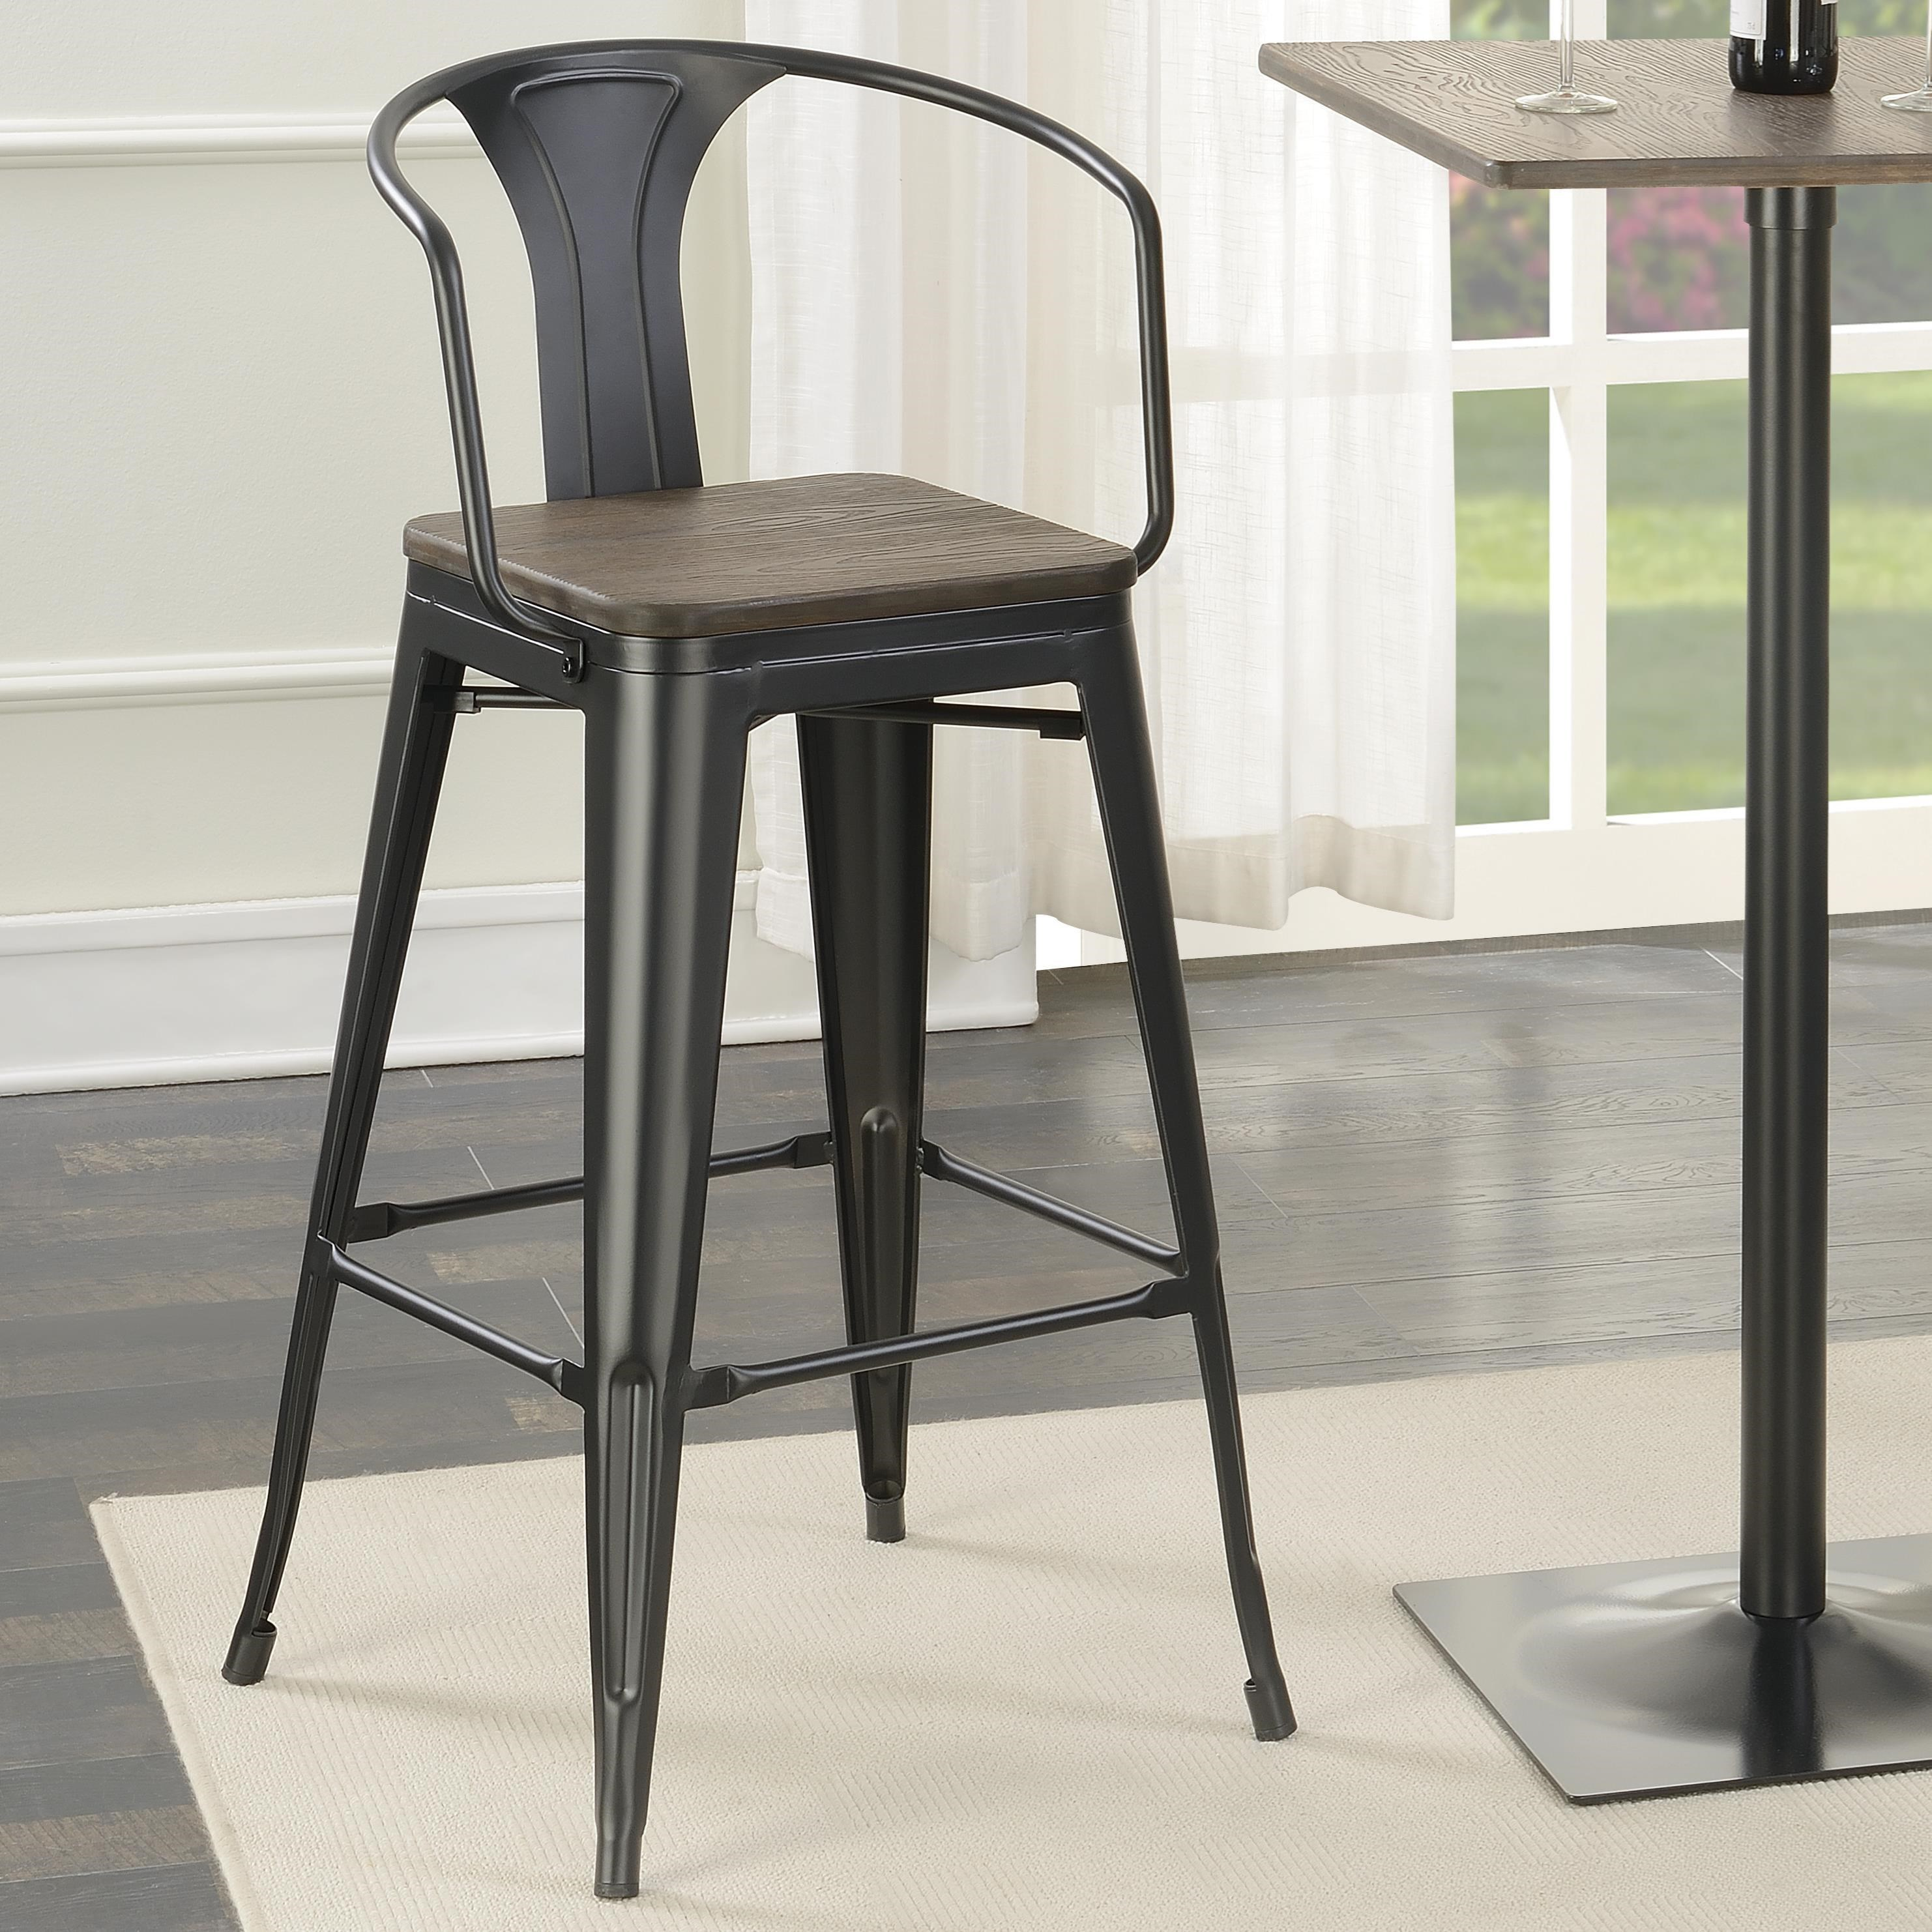 Coaster dining chairs and bar stools cafe stool